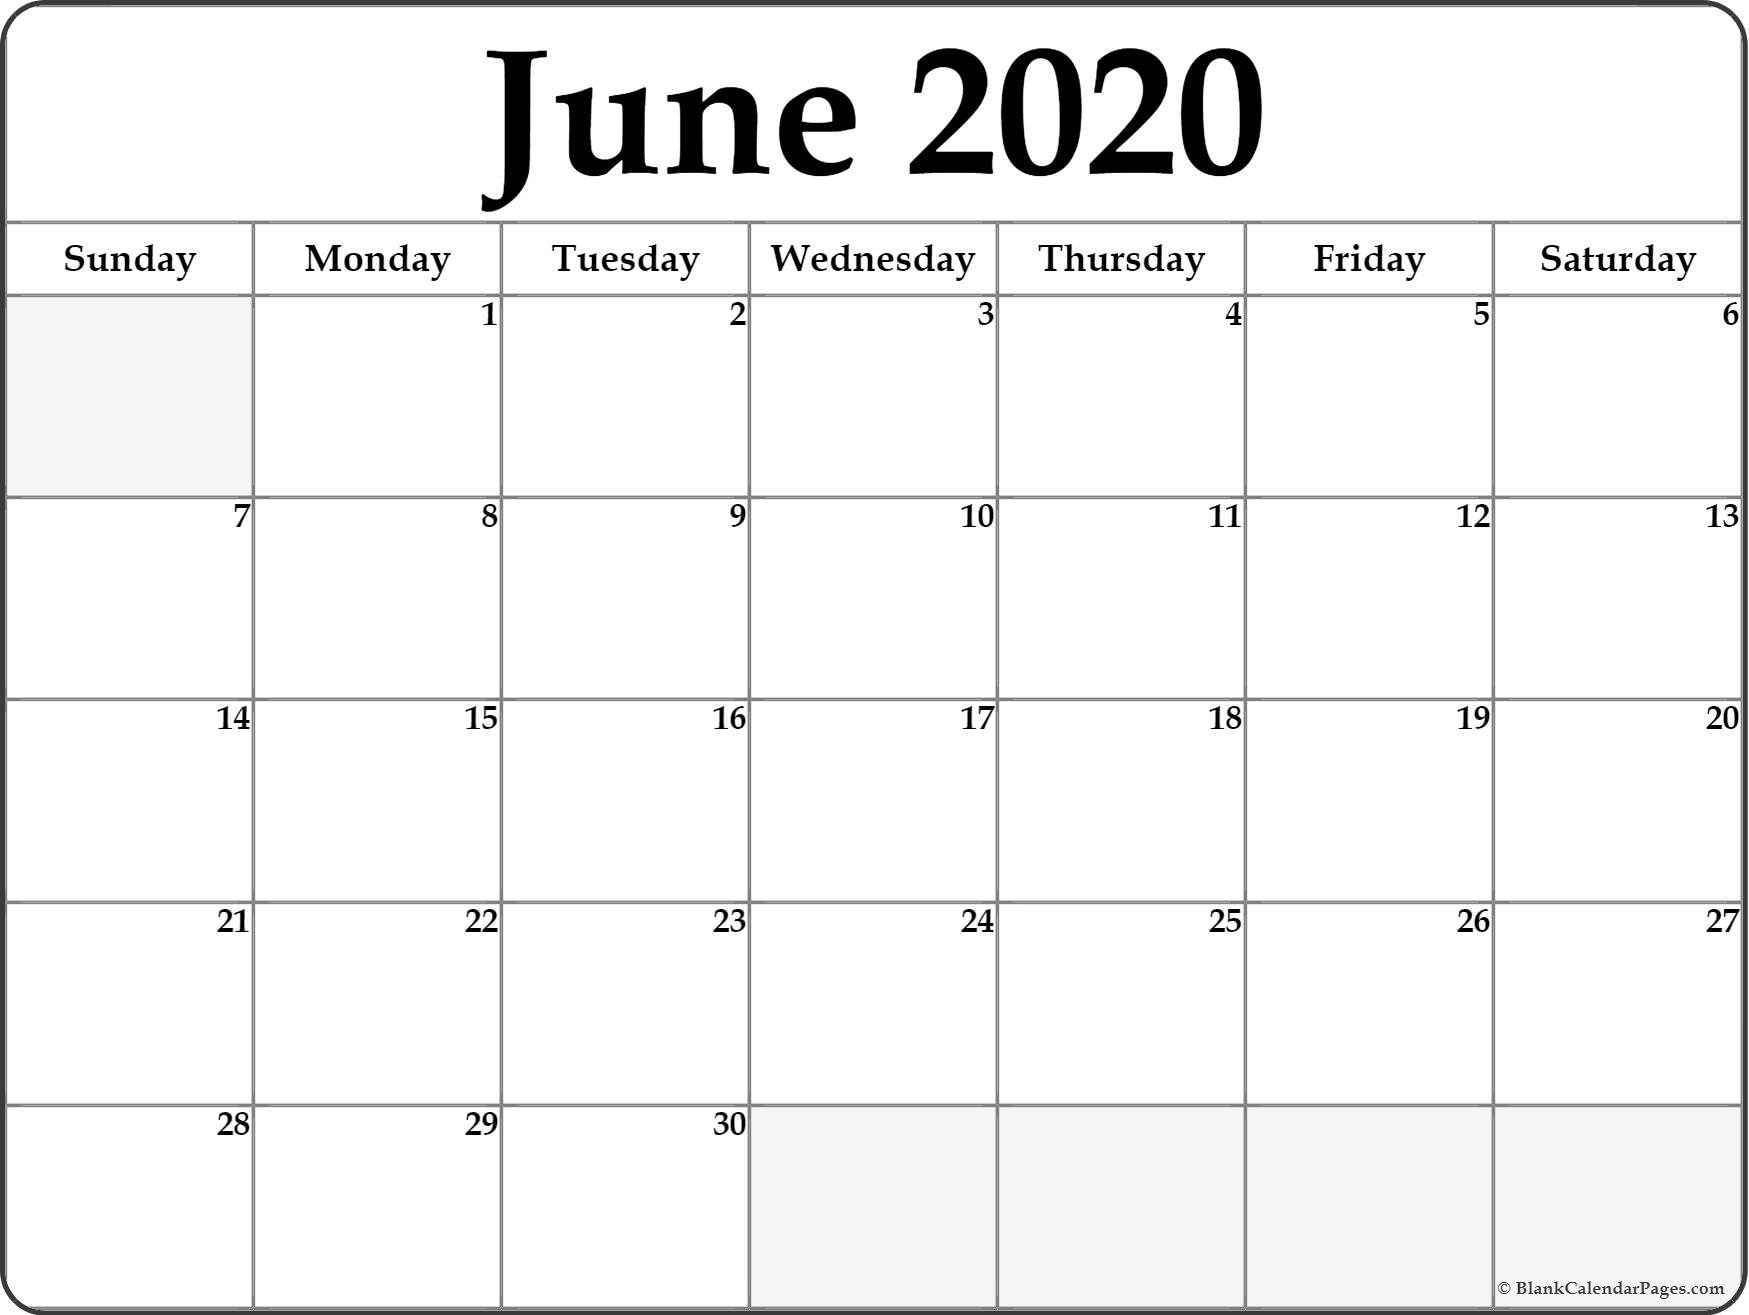 June 2020 Calendar | Free Printable Monthly Calendars pertaining to Free Calendar July 2019-June 2020